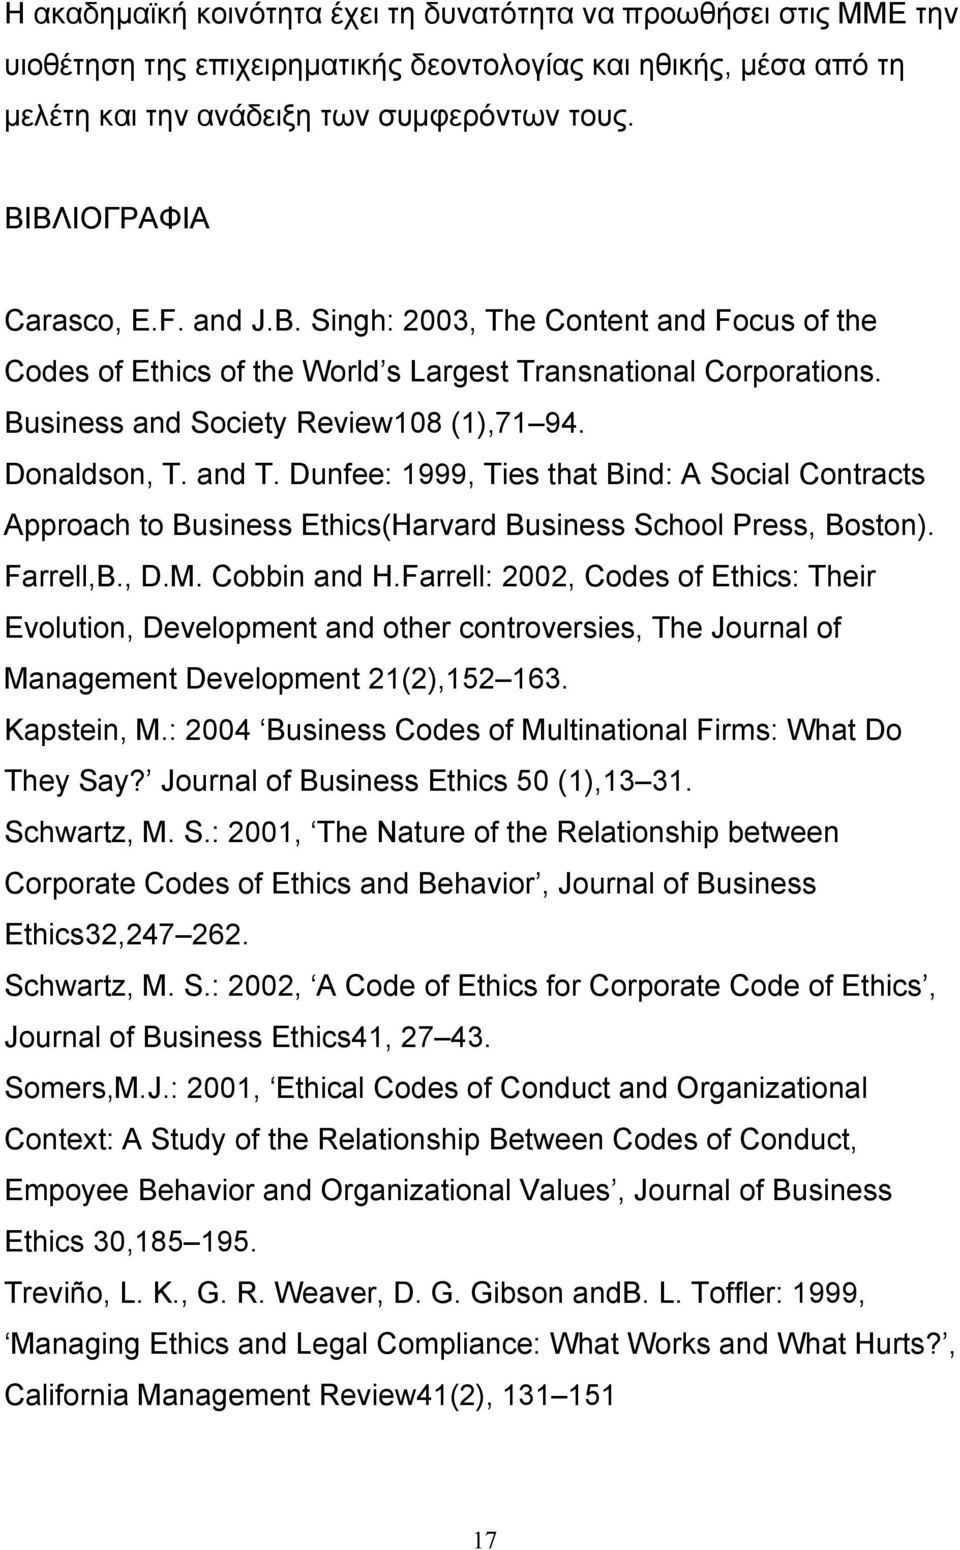 and T. Dunfee: 1999, Ties that Bind: A Social Contracts Approach to Business Ethics(Harvard Business School Press, Boston). Farrell,B., D.M. Cobbin and H.